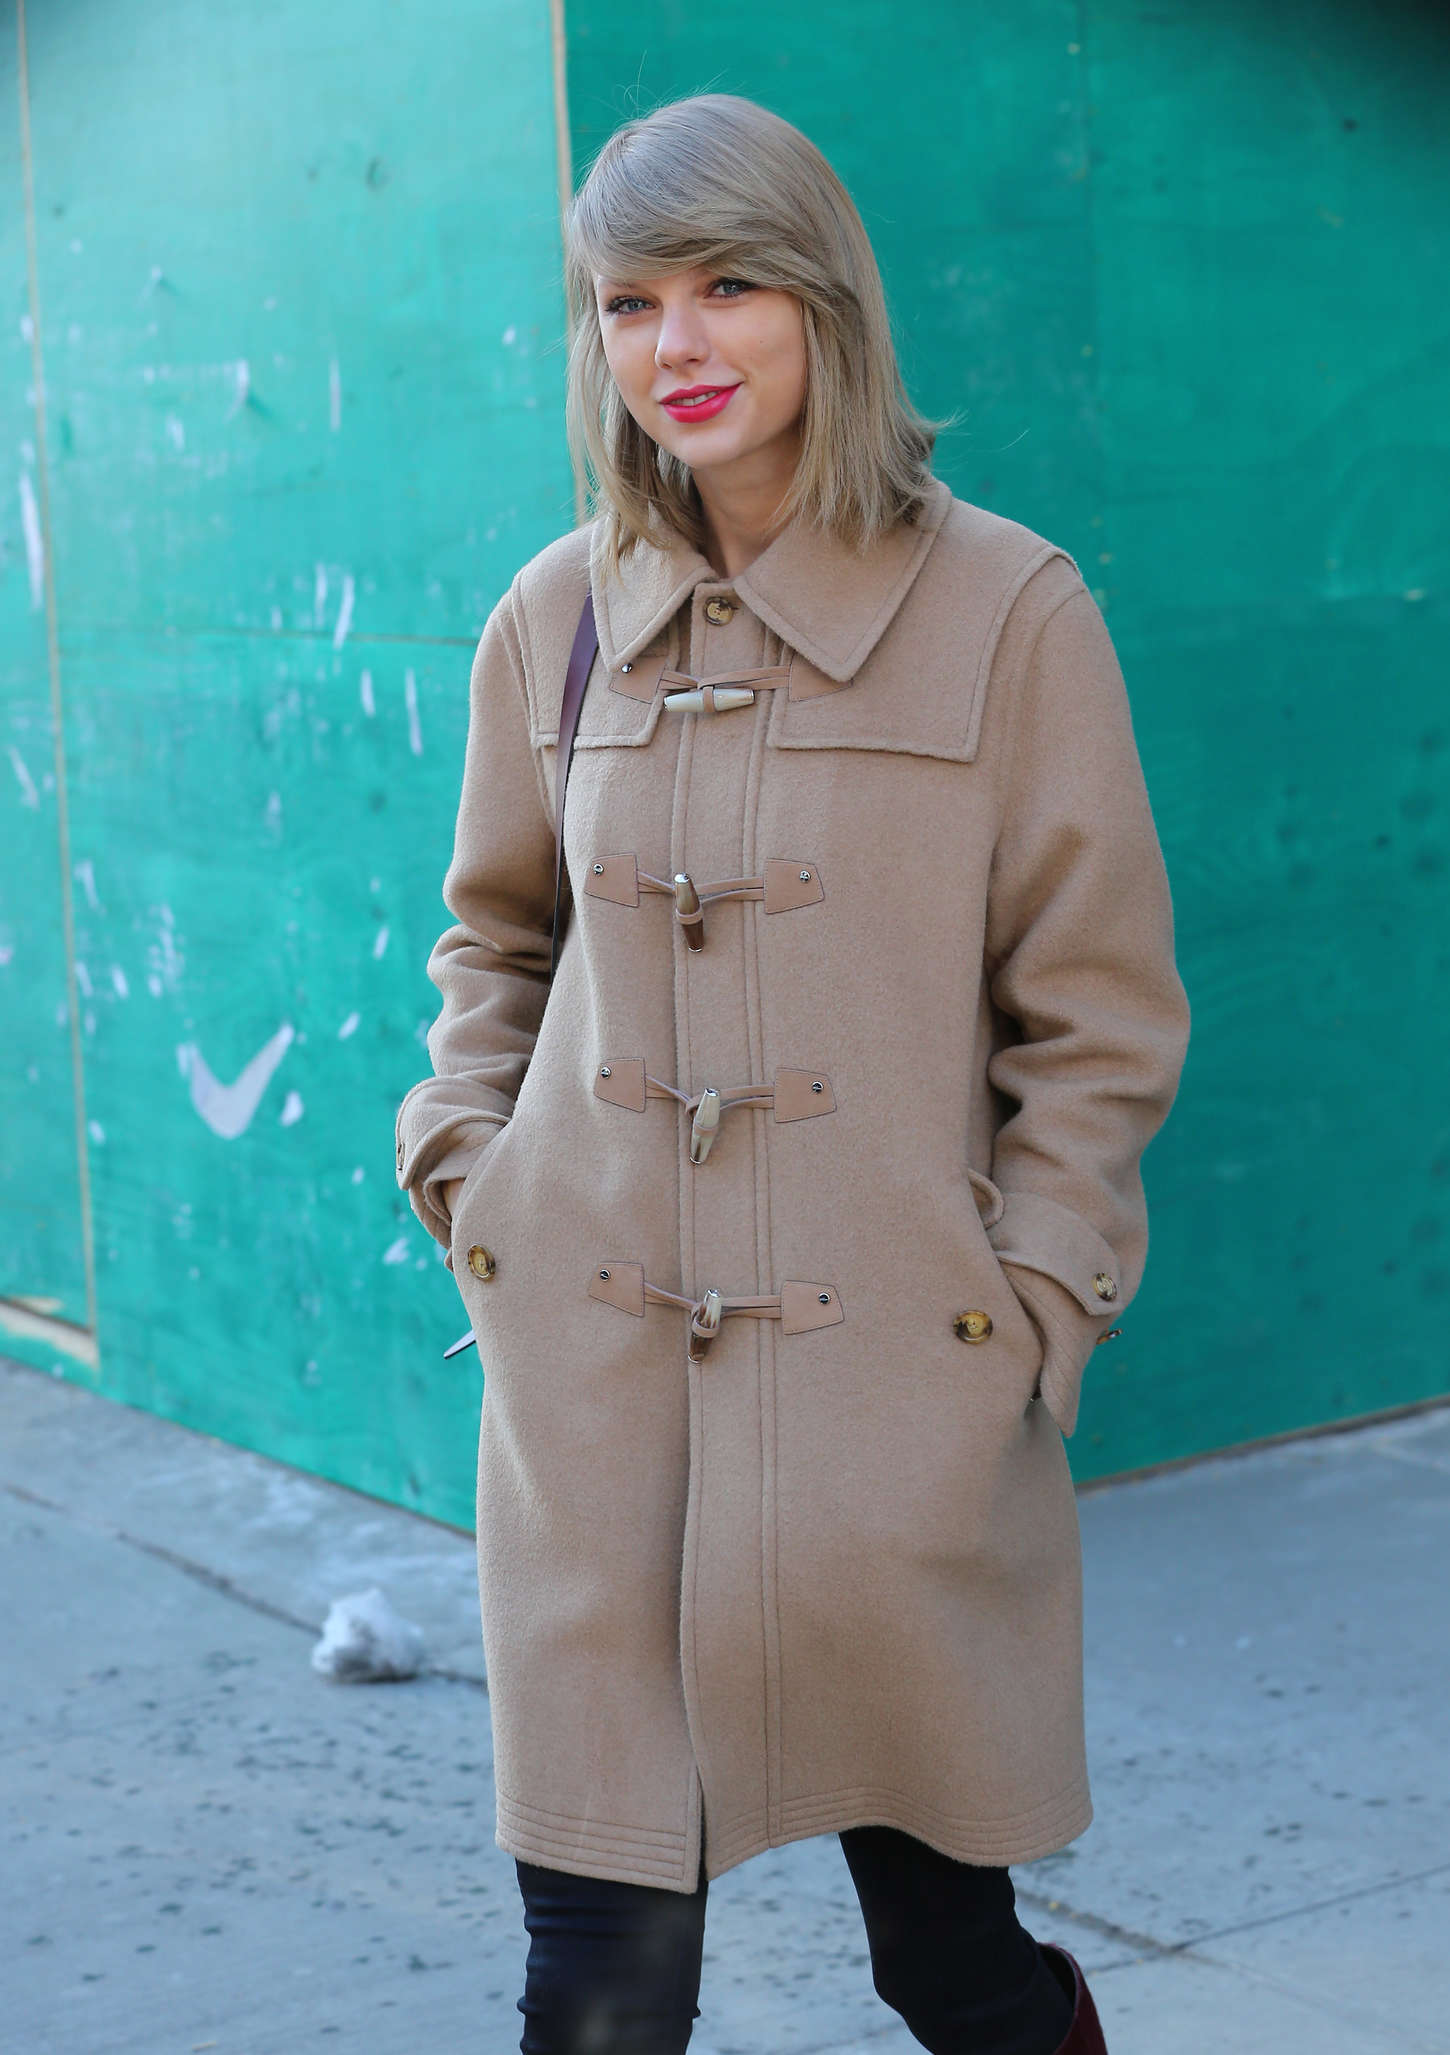 Taylor Swift - Out and about in NYC